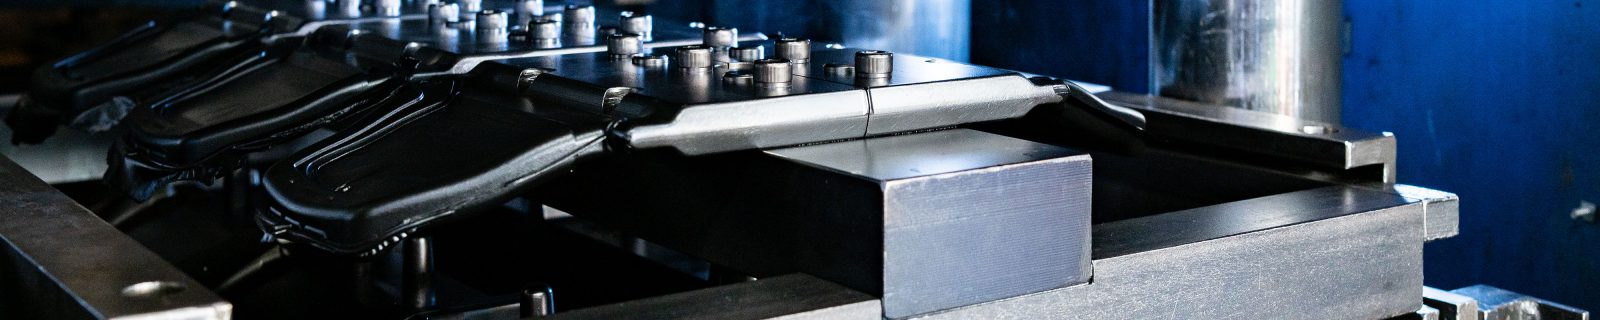 Rubber to metal bonding of overmoulded parts